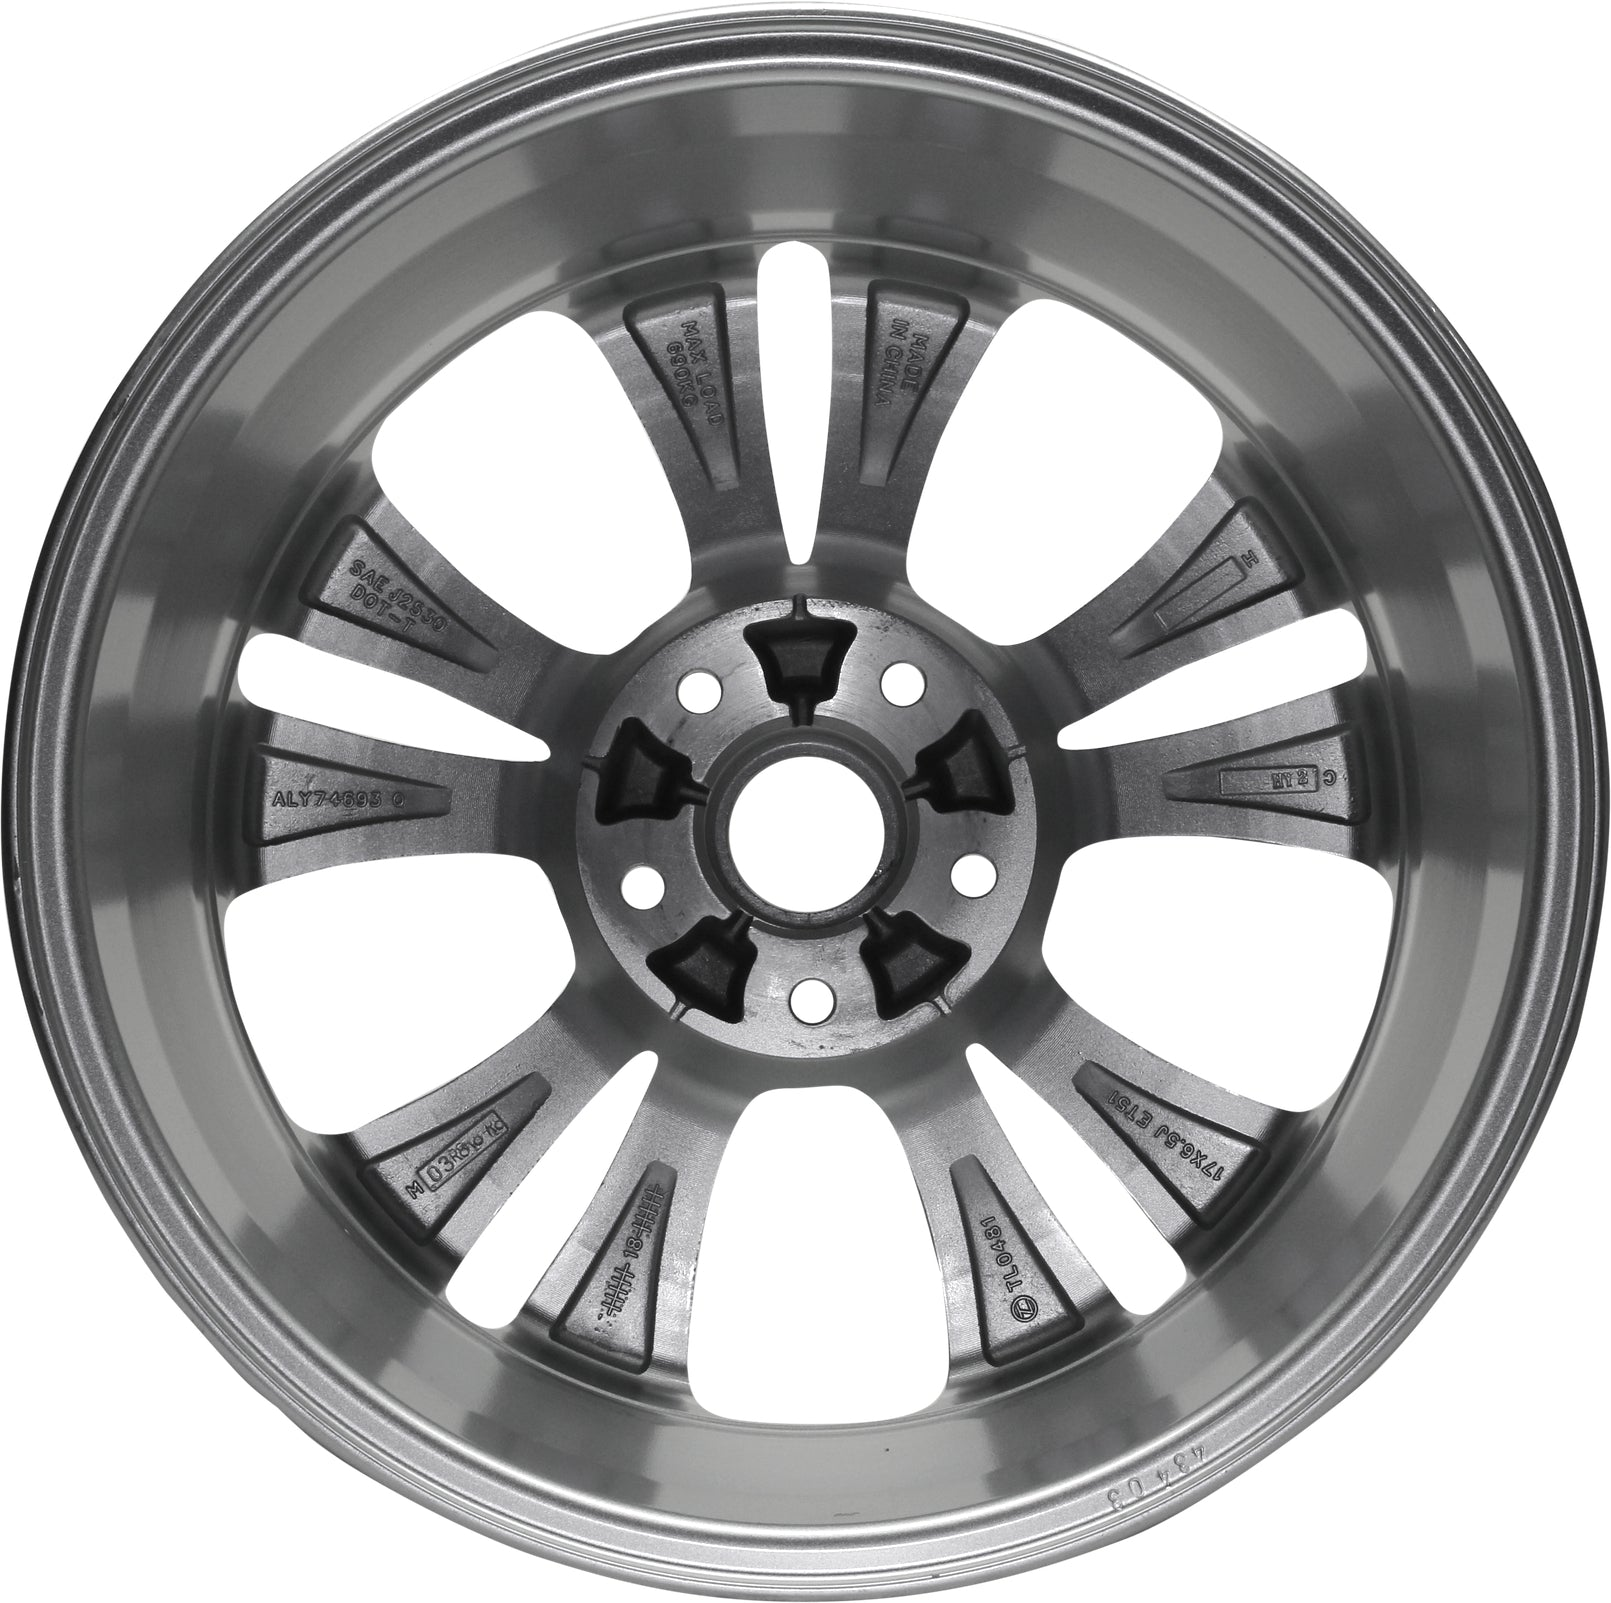 Exact OEM Replacement Road Ready Car Wheel for 2008-2020 Kia Soul 16 inch 5 Lug Steel Rim Fits R16 Tire